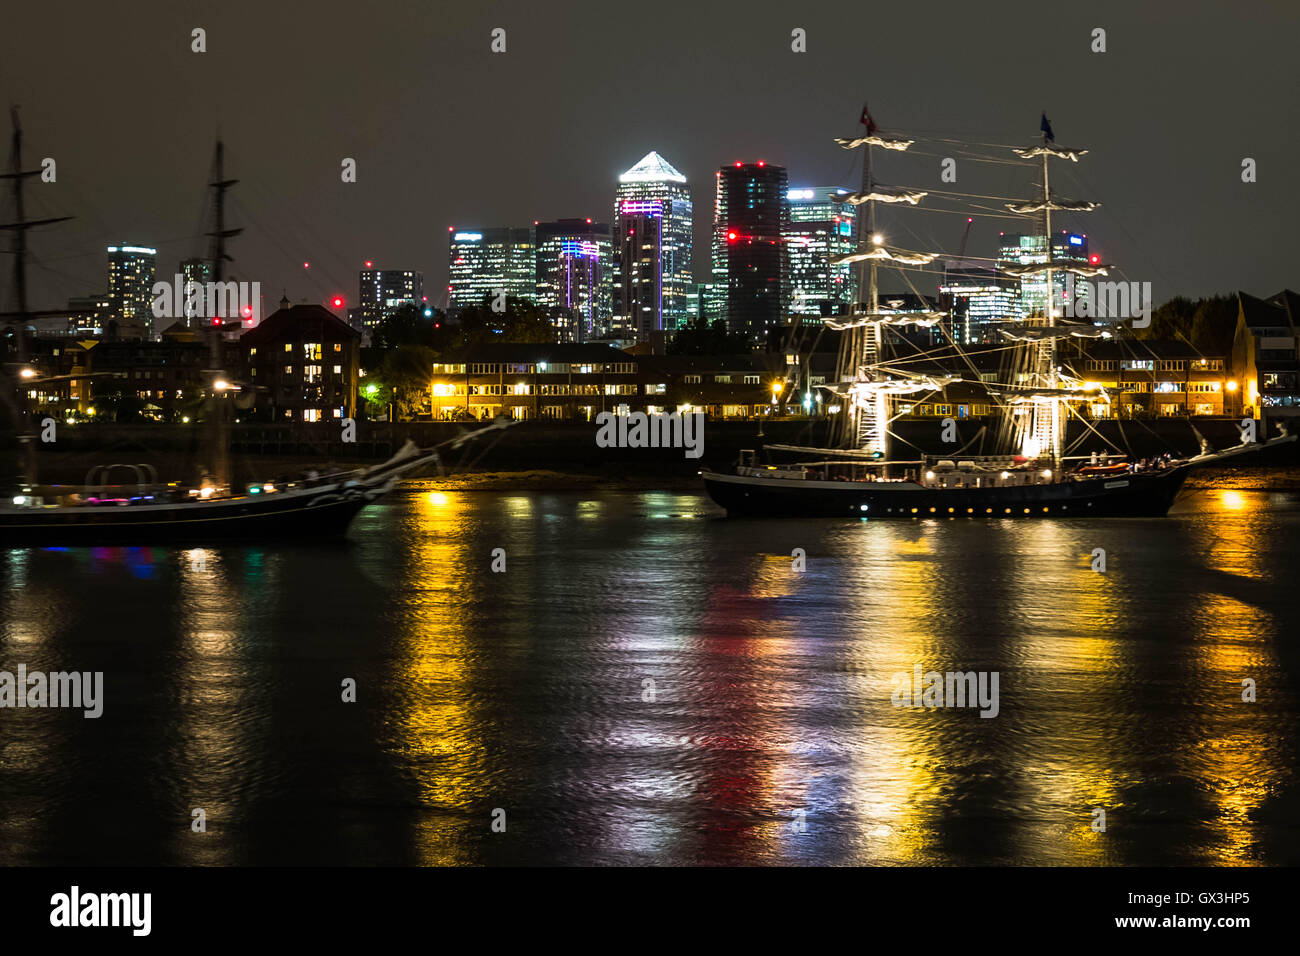 London, UK. 15th September, 2016. Royal Greenwich Tall Ships Festival with Canary Wharf buildings seen in the background - Stock Image